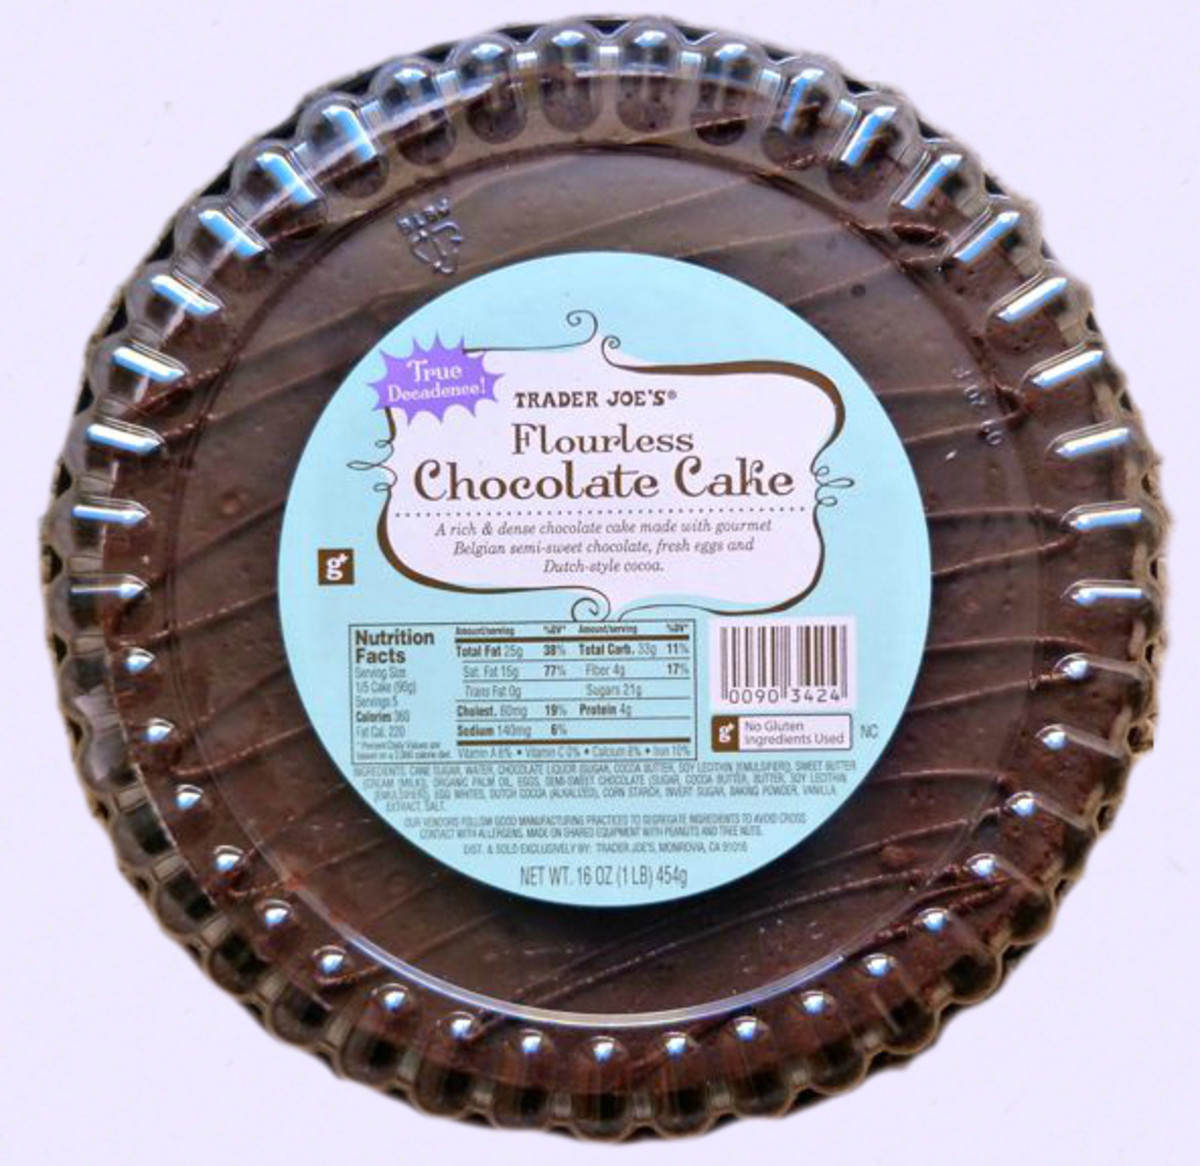 Trader Joe's Flourless Chocolate Cake